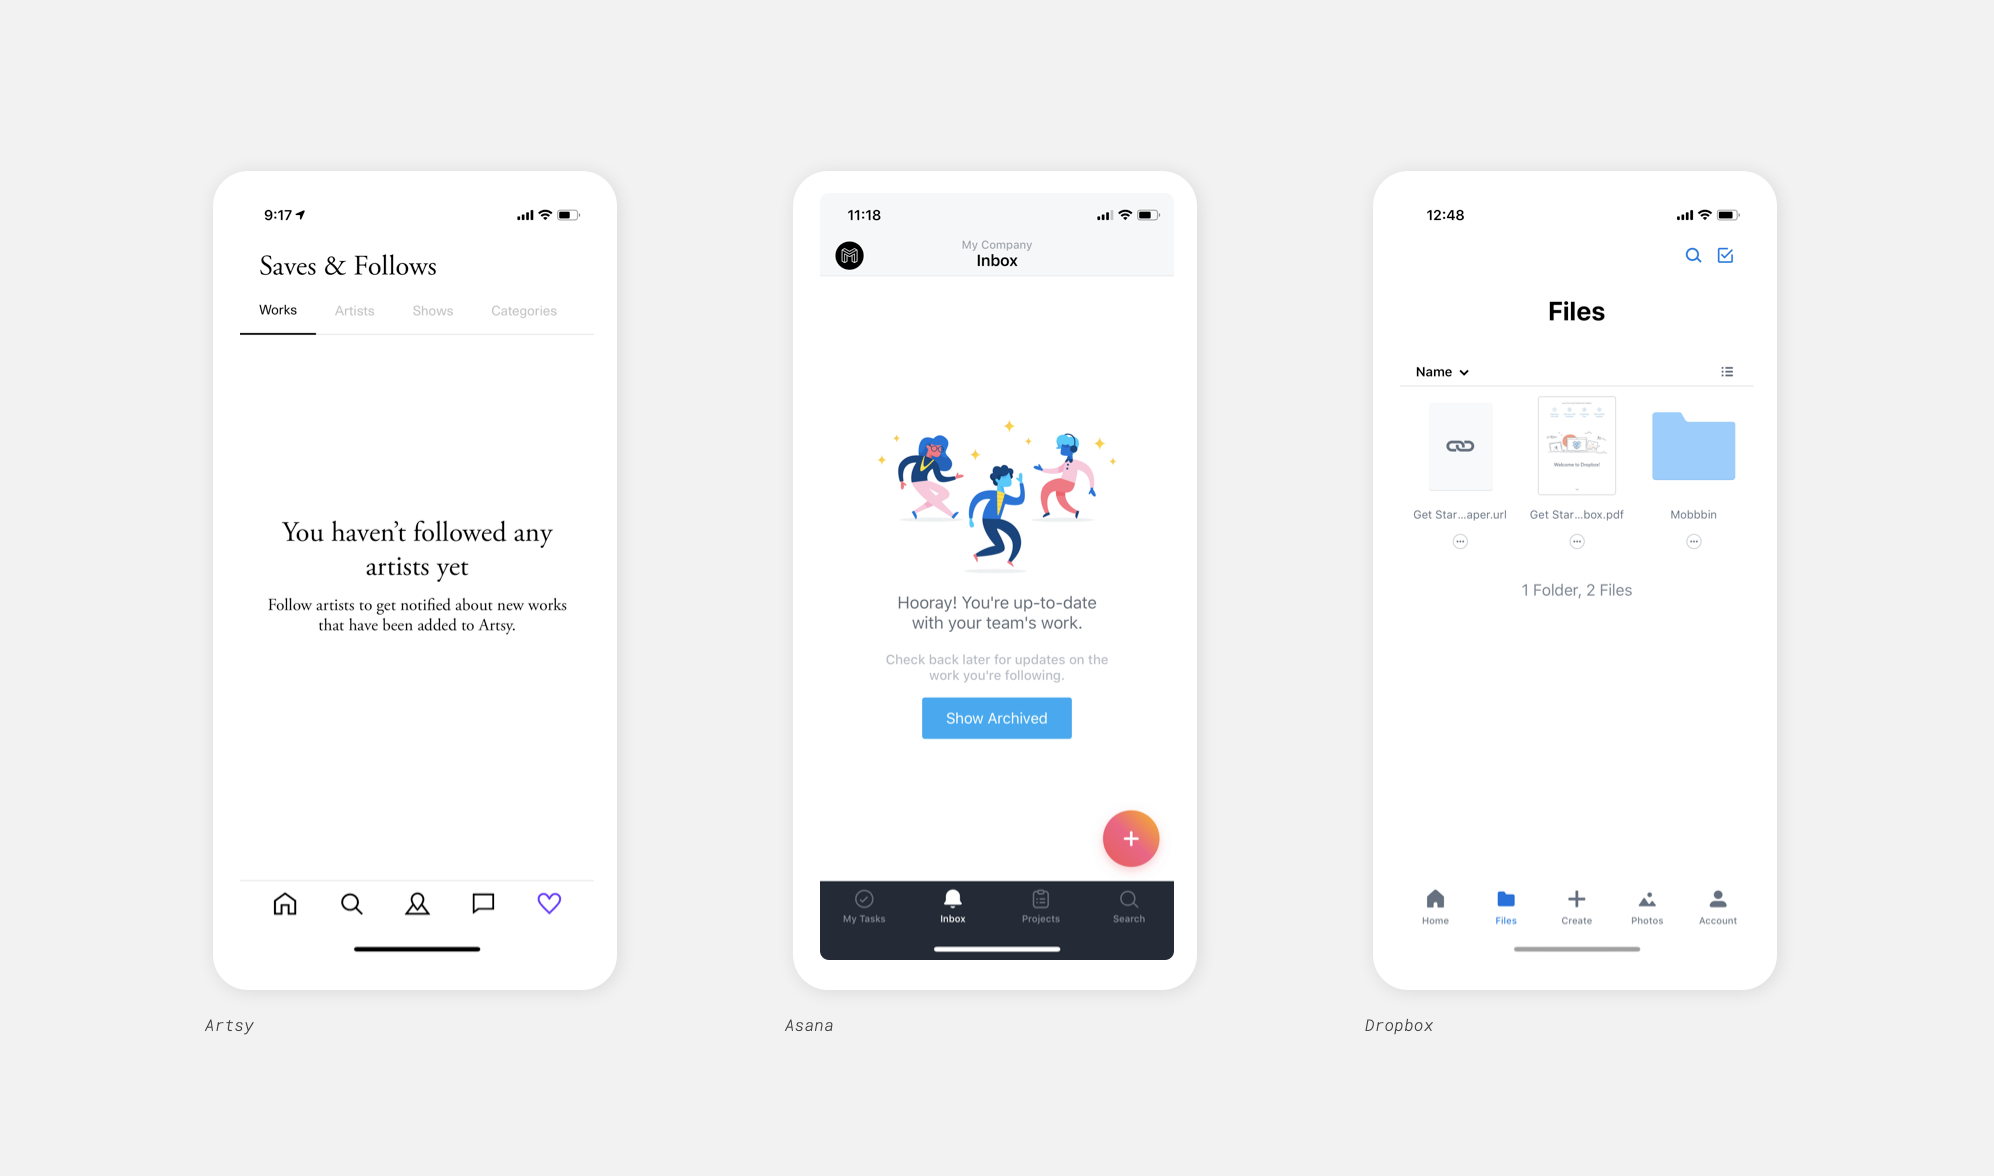 State Of Mobile App Design 2019 2019 Is Almost Half Way Over So It S By Martin Wiesemborski Ux Collective